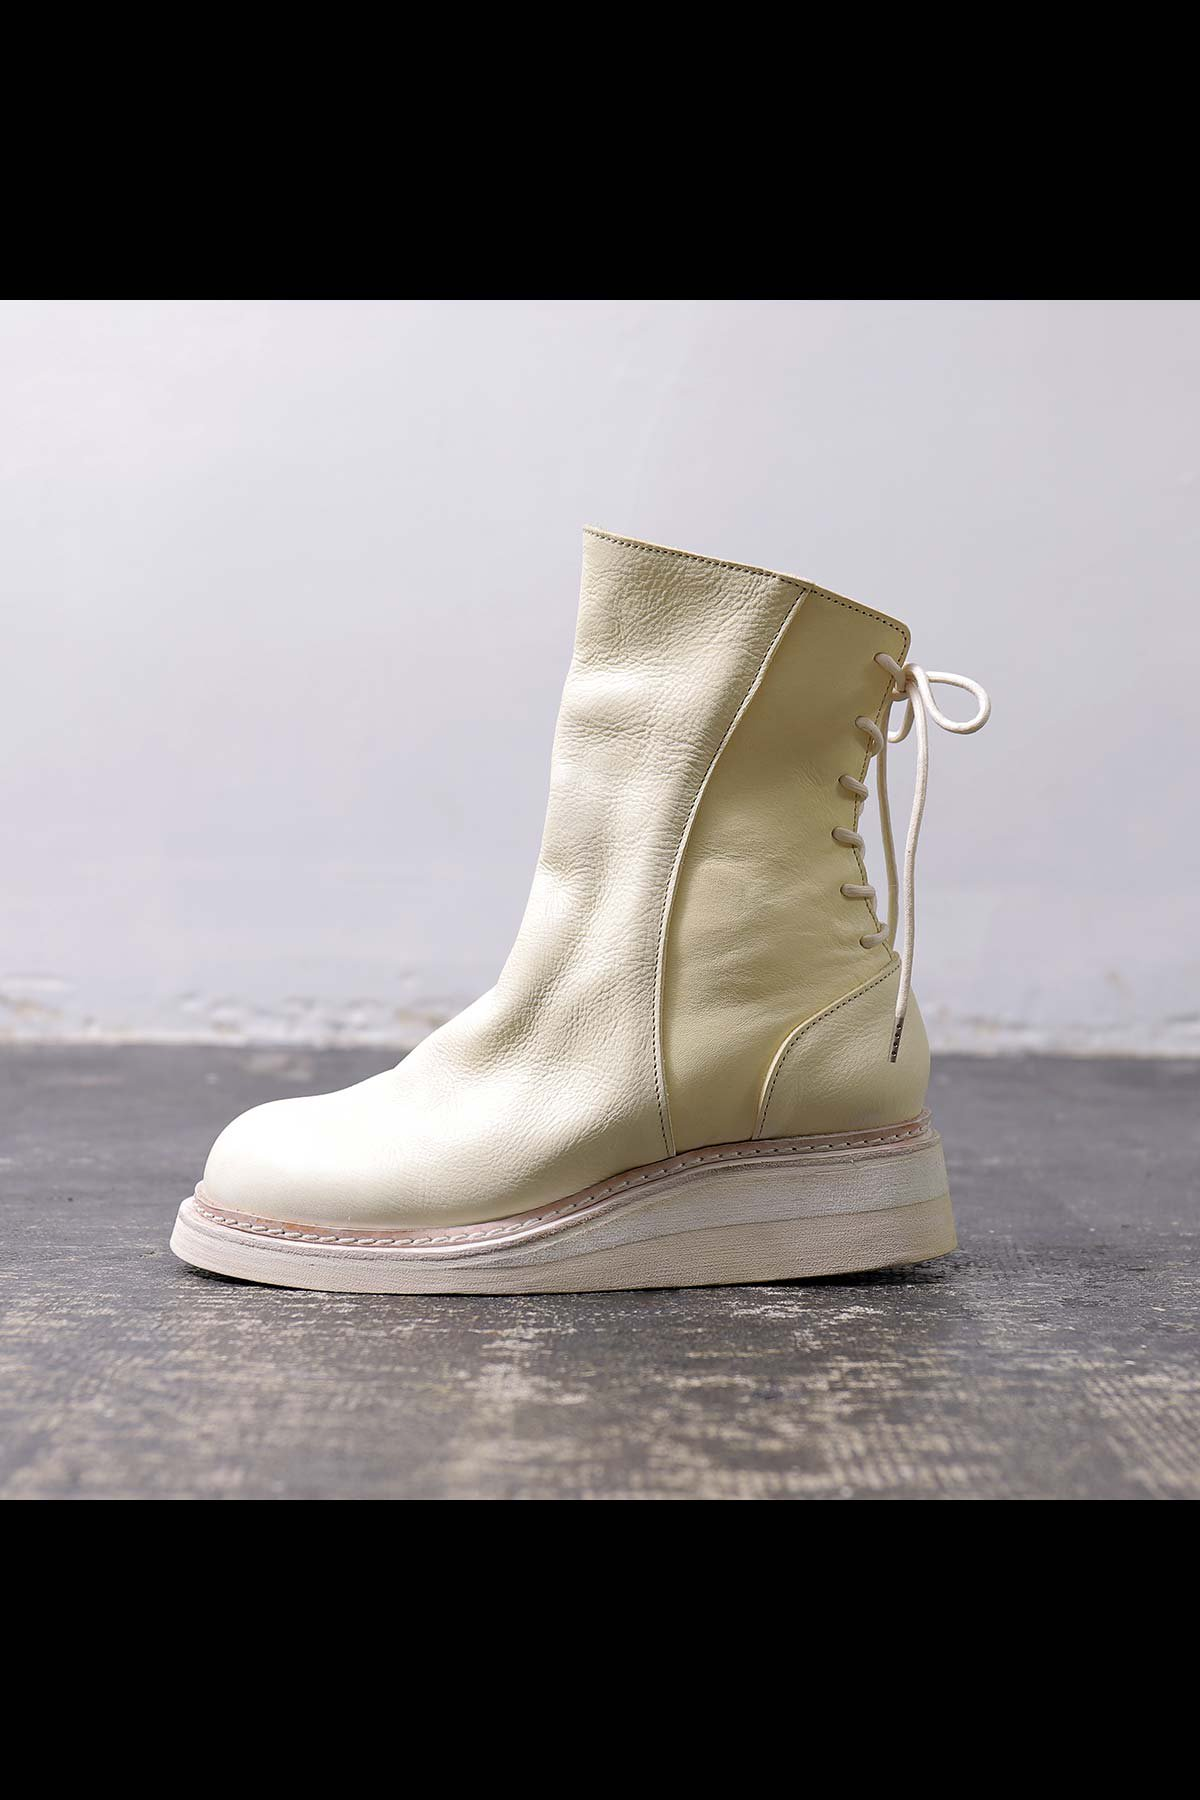 Portaille_BACK LACE UP LEATHER BOOTS PQ02F_WHITE